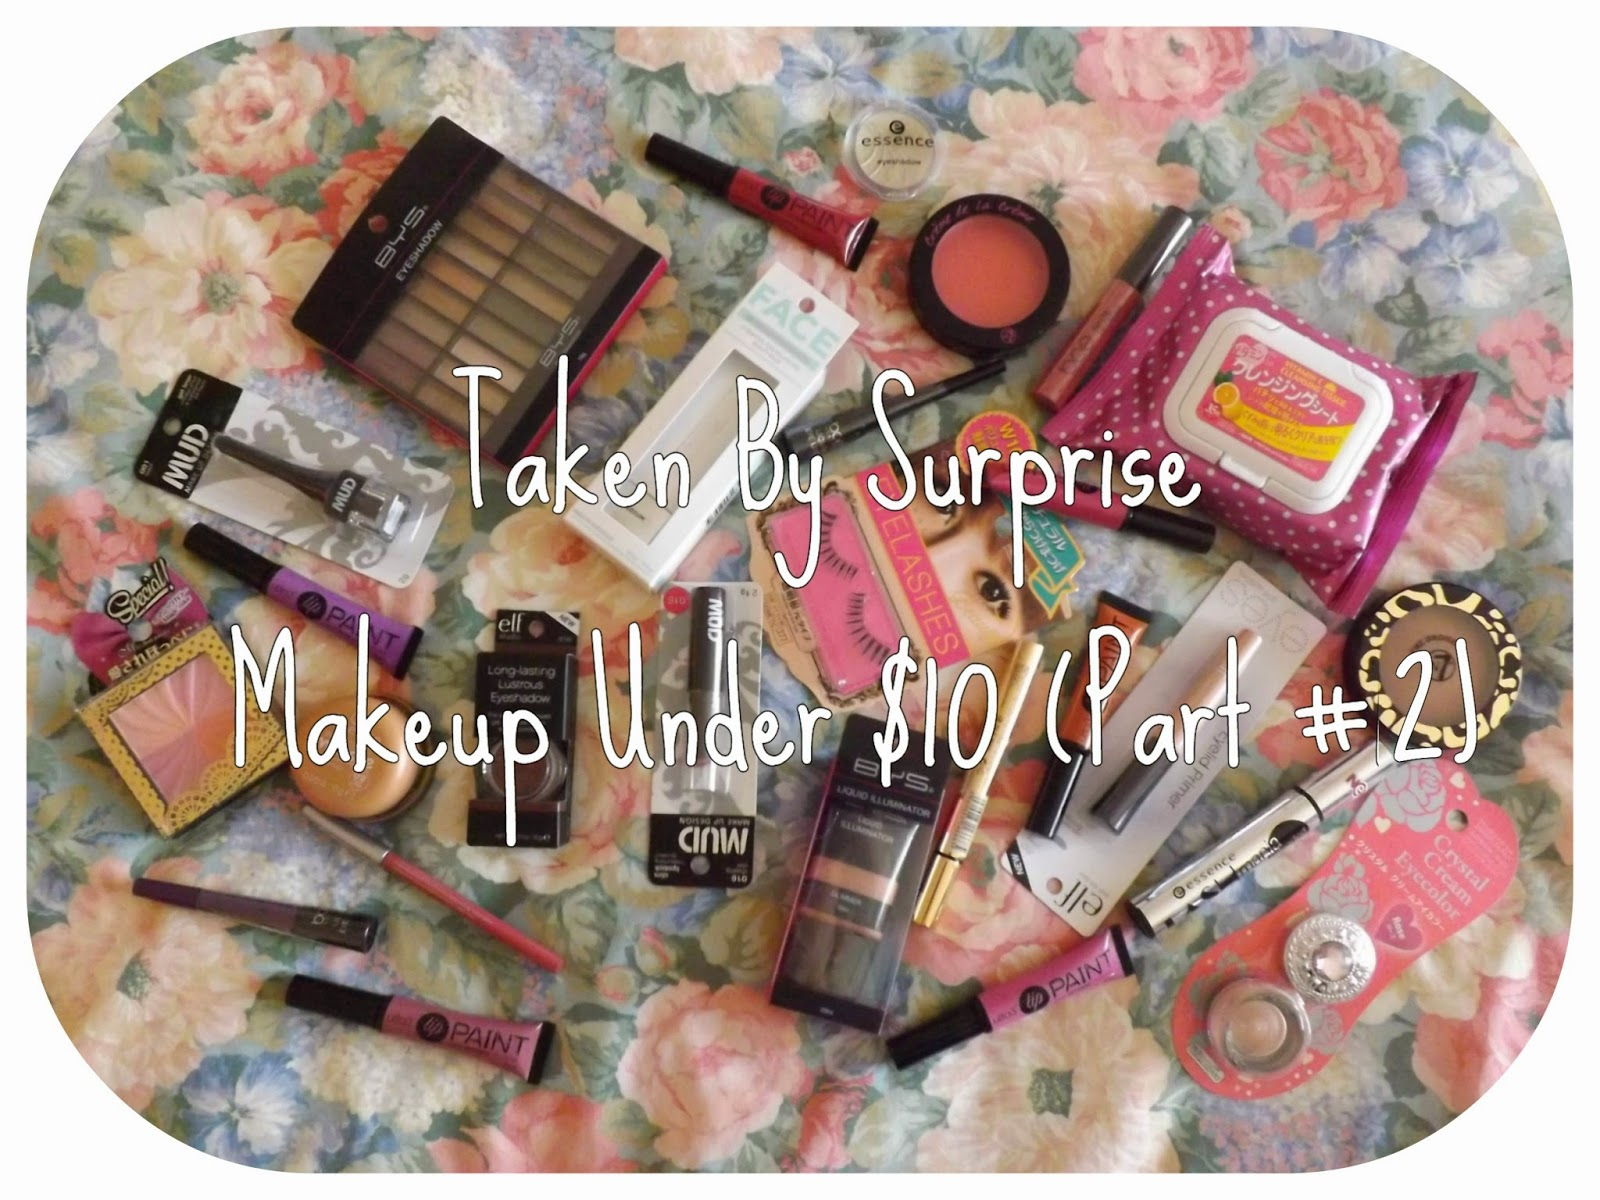 REVIEW: Makeup Under $10 (Part #2) - E.L.F, MUD and W7 : taken by ...